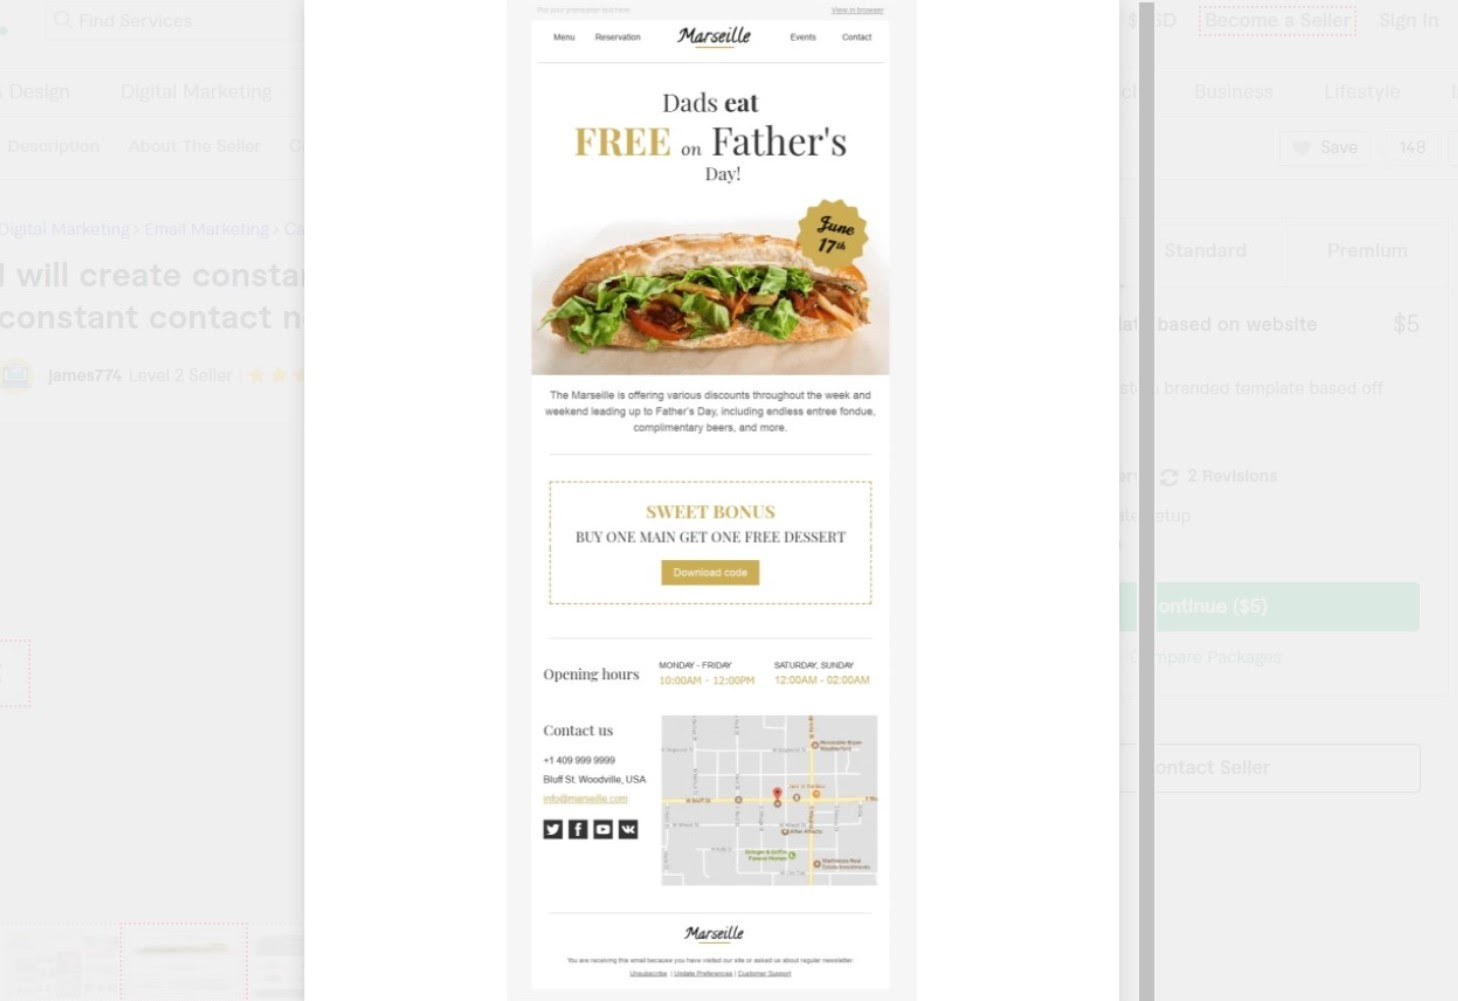 James774 Constant Contact email template example